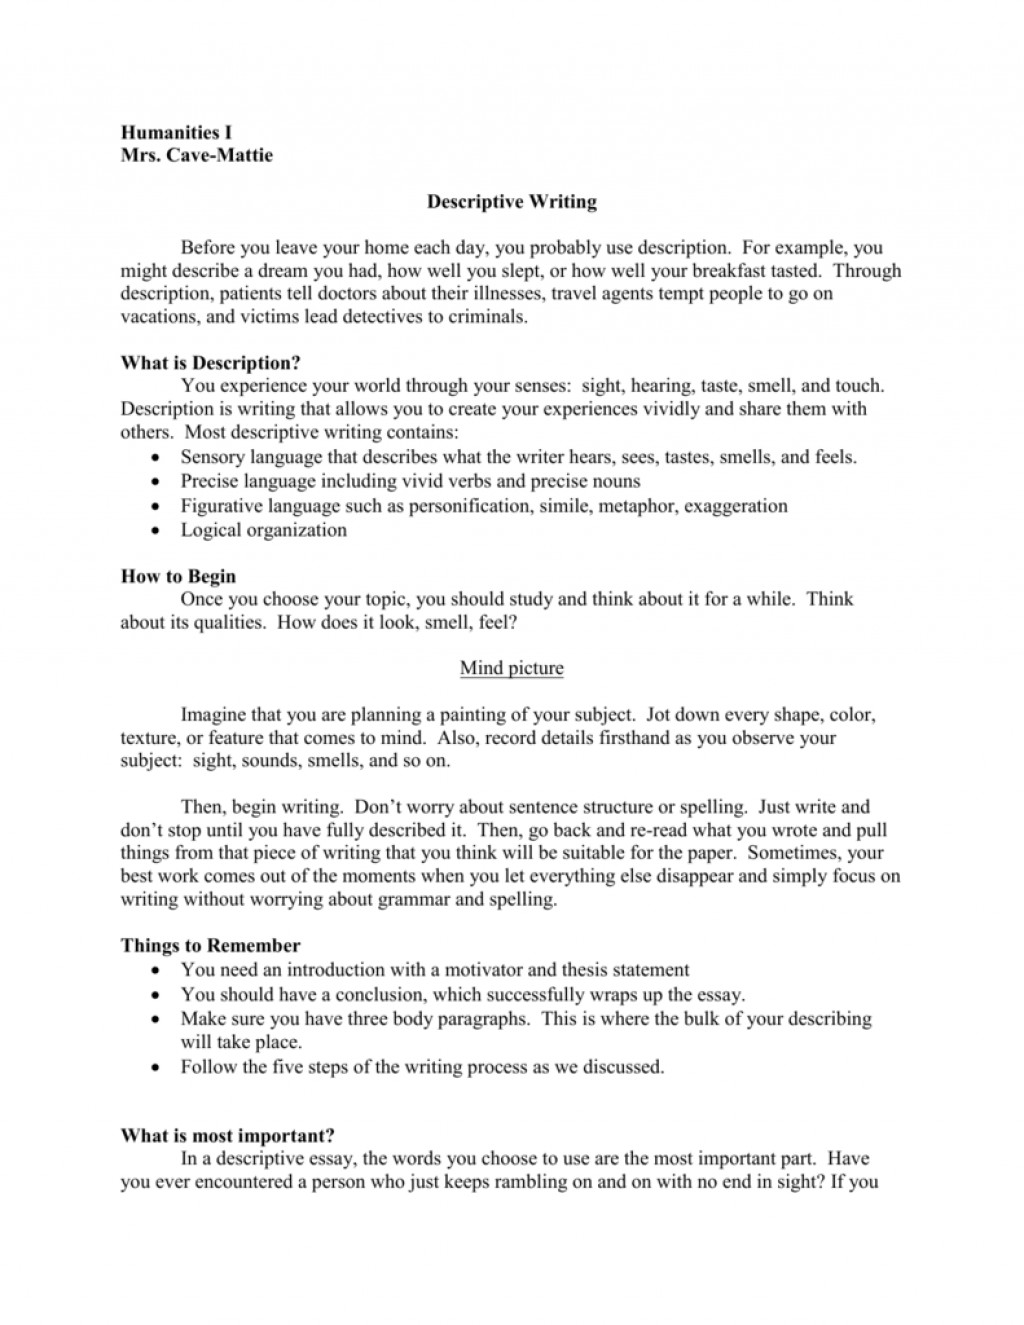 026 008496704 1 Essay Example Examples Of Descriptive Unusual Essays Pdf Free About A Person Painting Picture Large